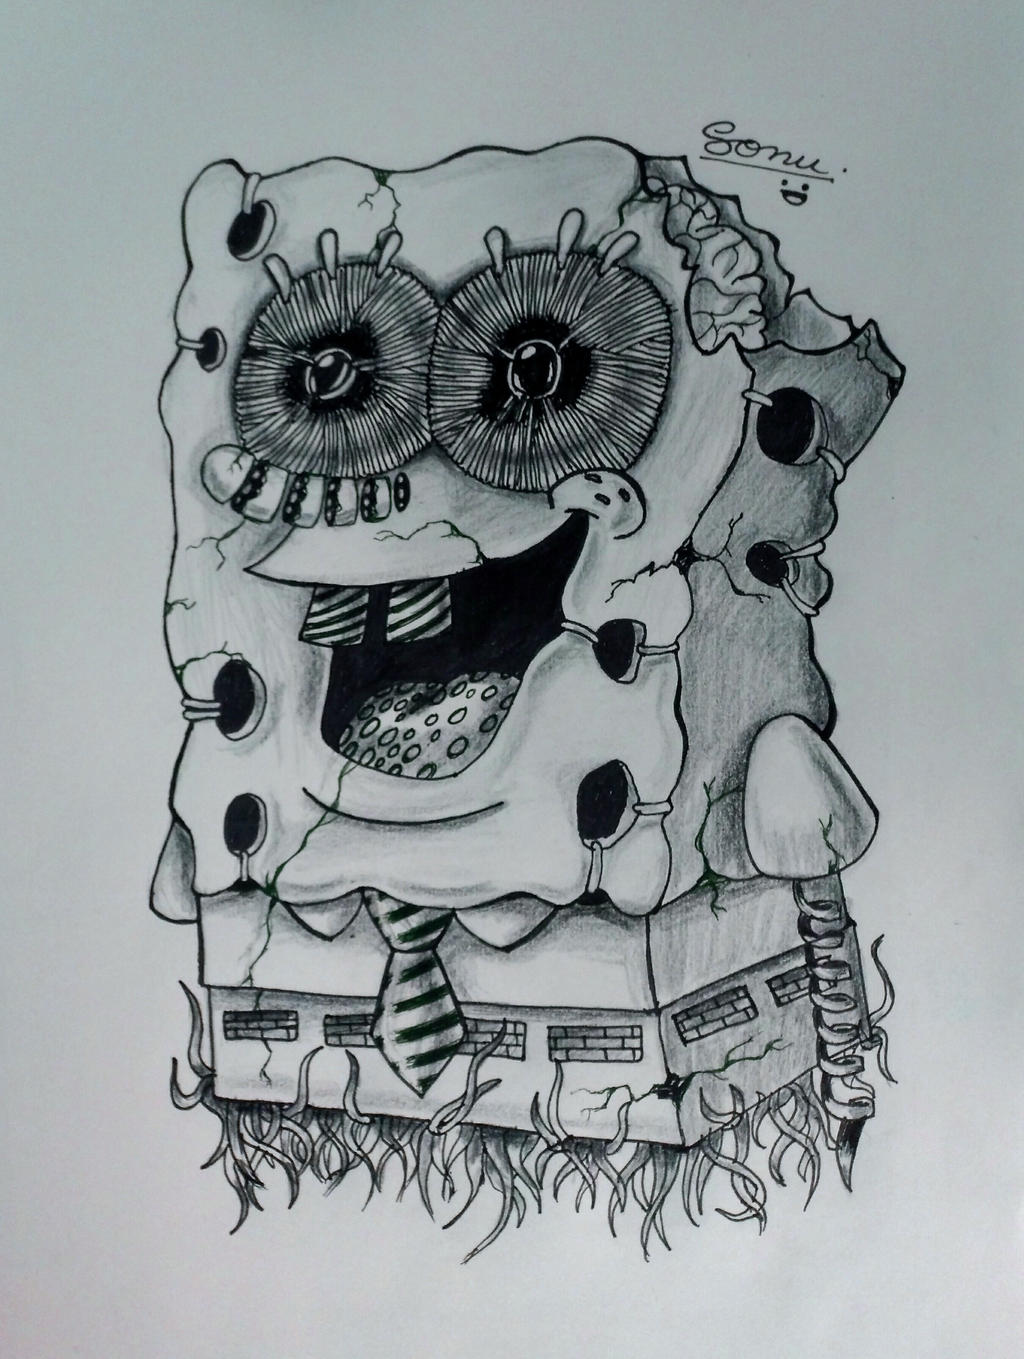 Spongebob Squarepants by sonu9